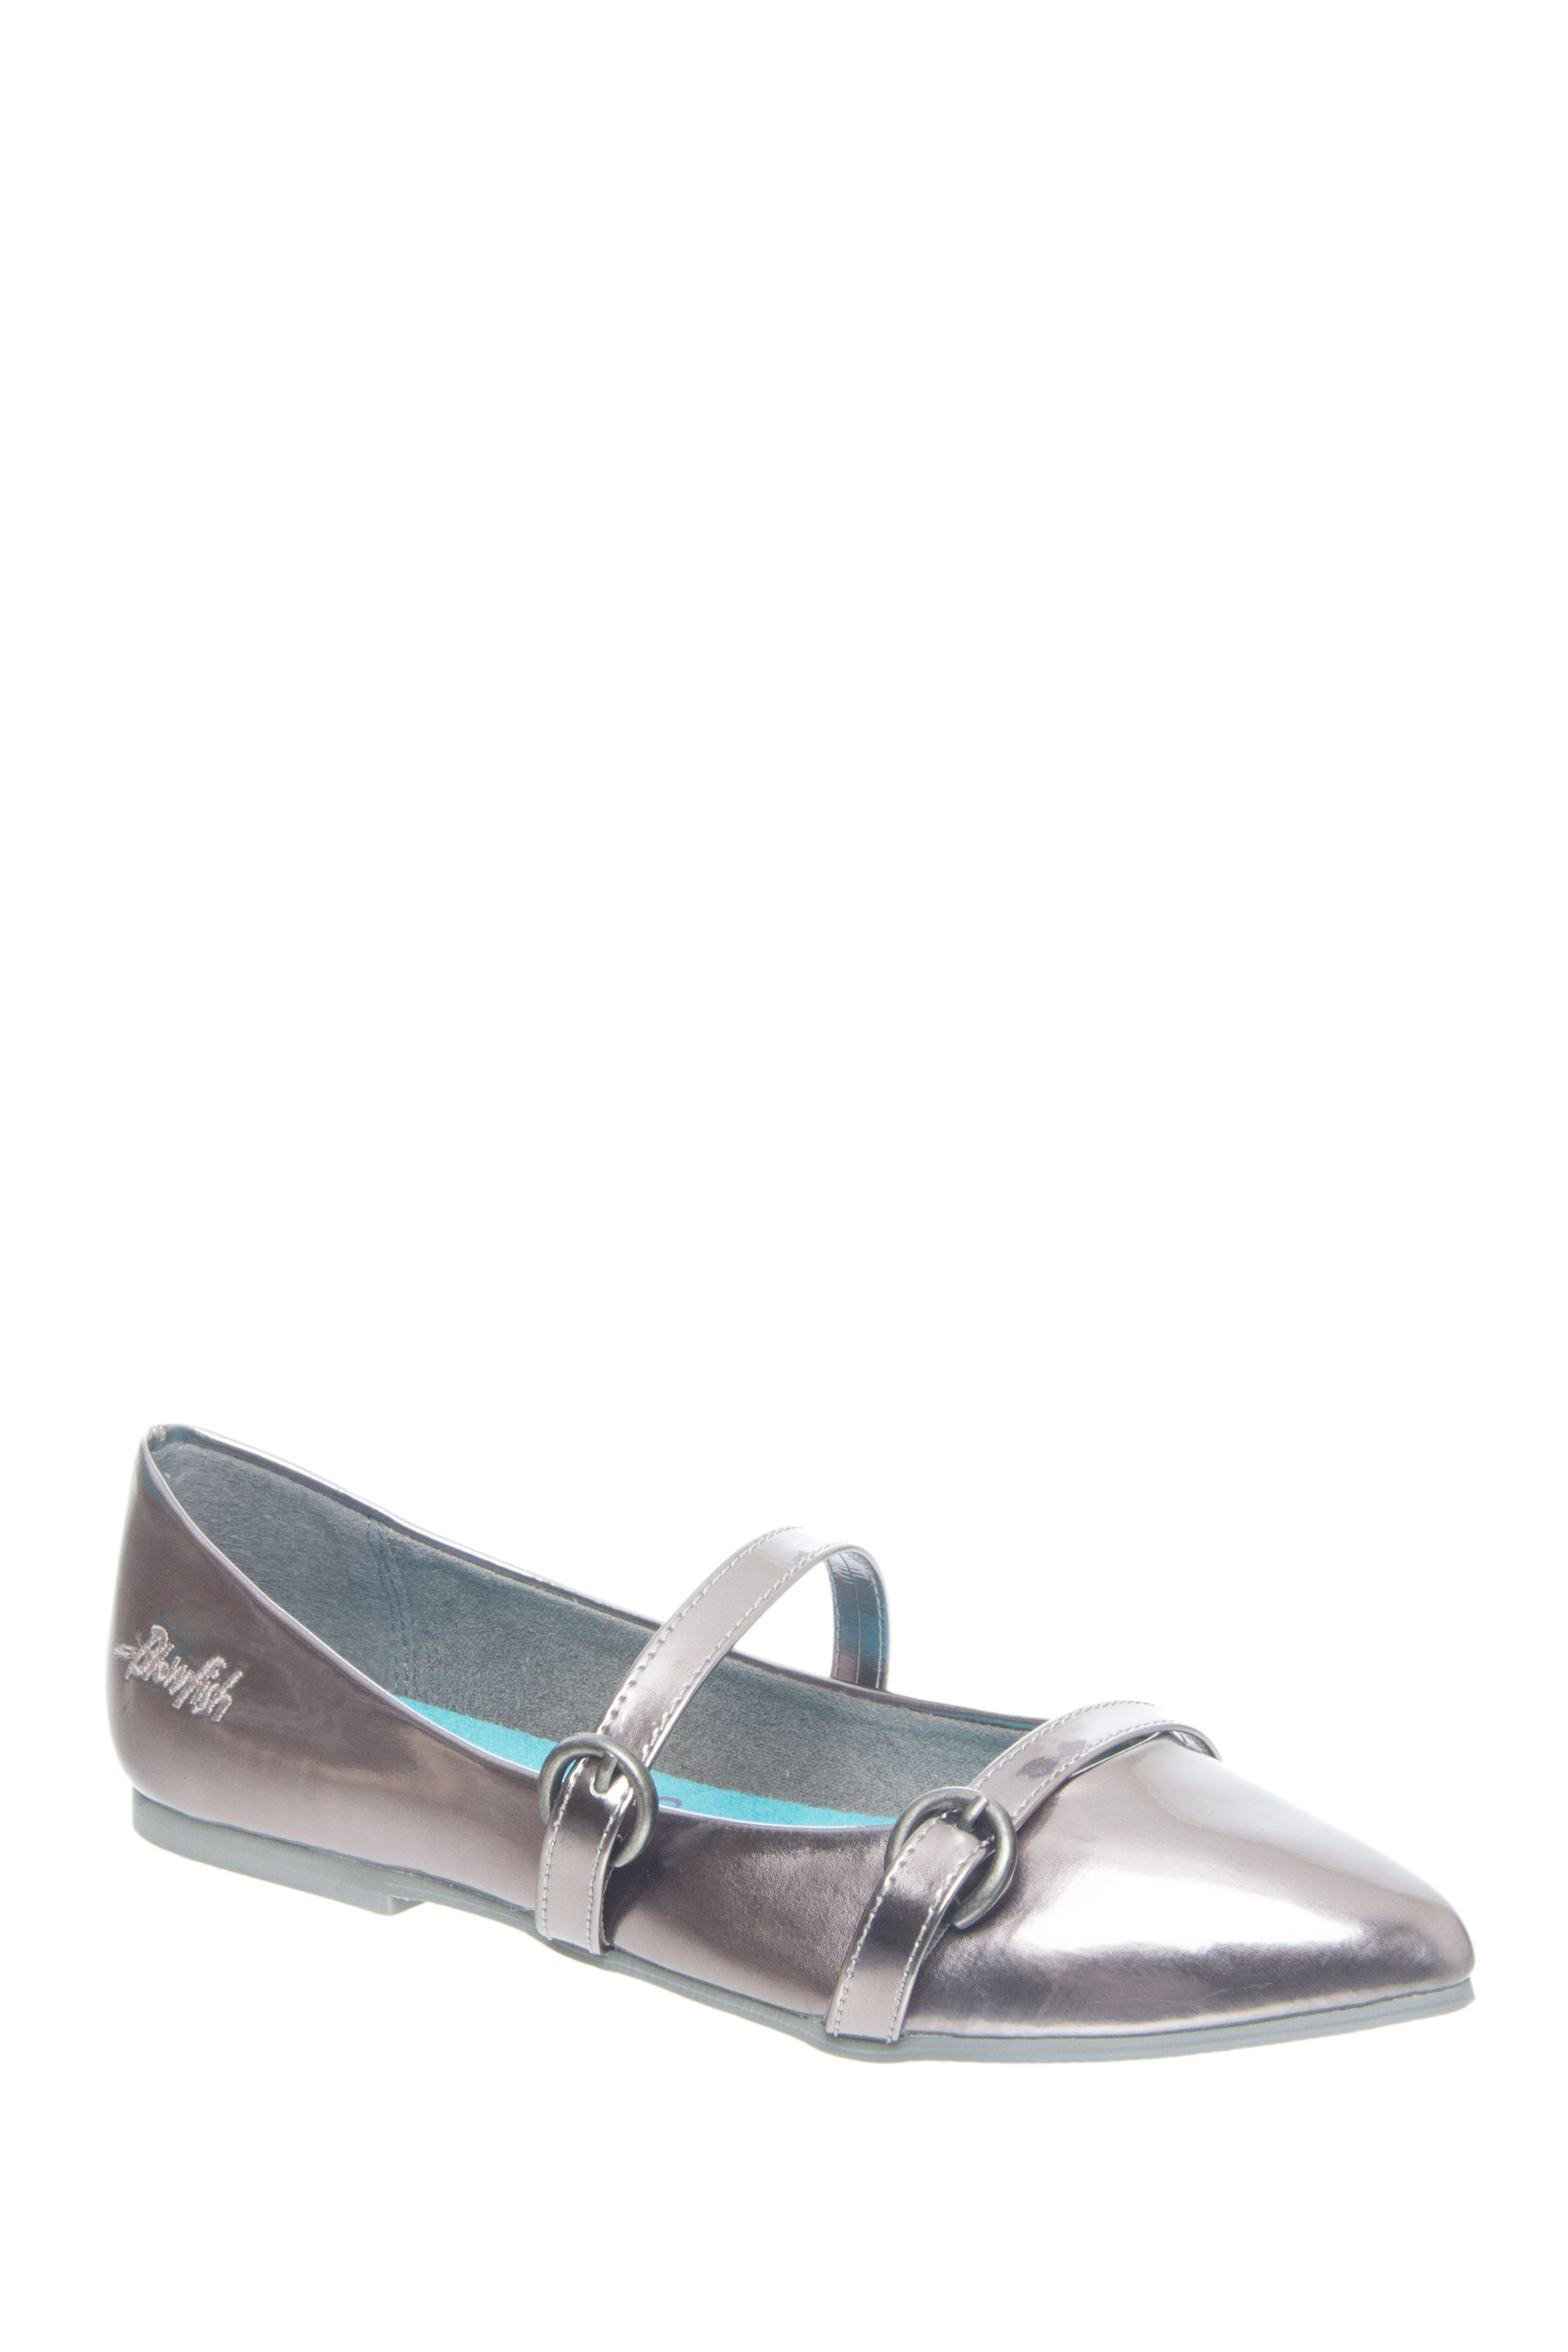 Blowfish Zaza Pointed-Toe Flats - Pewter